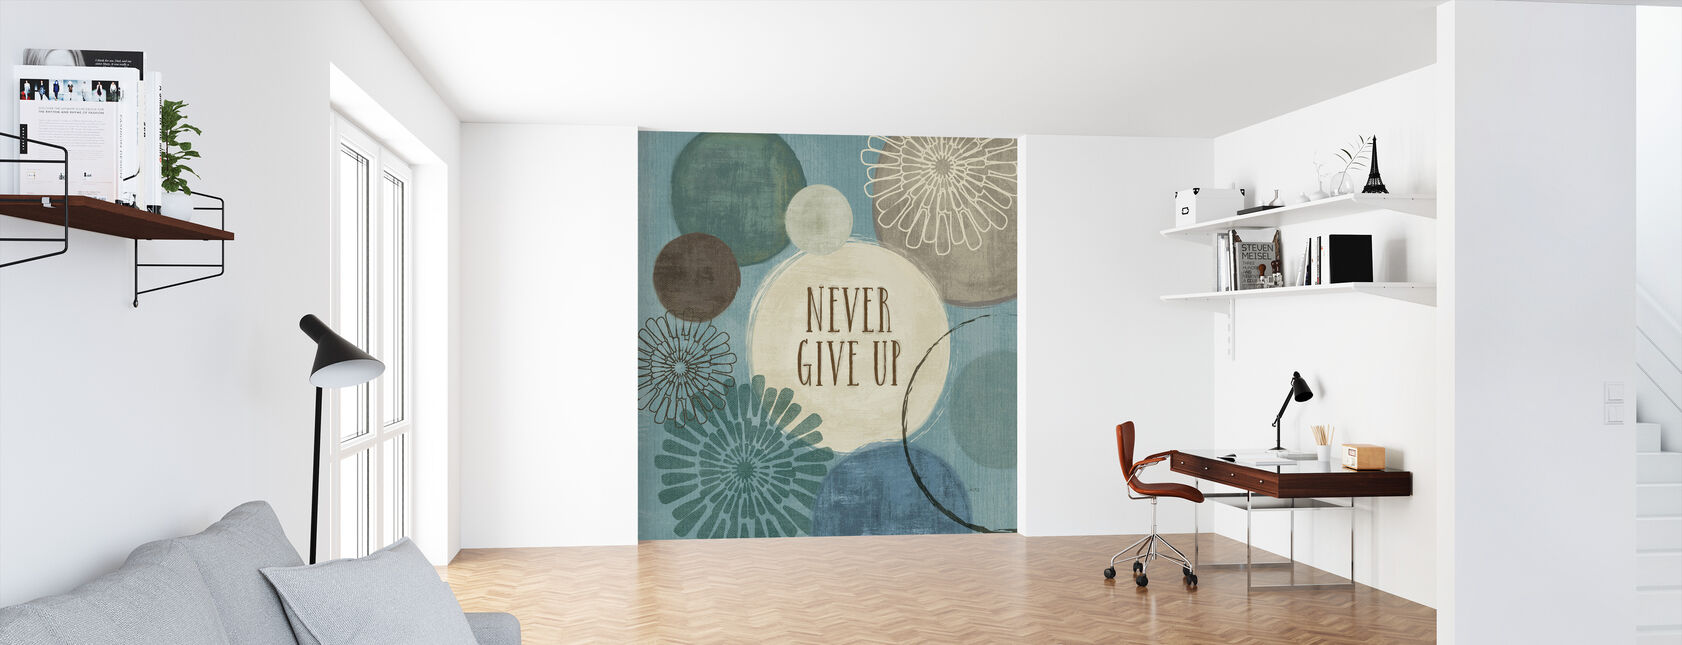 Never Give Up - Wallpaper - Office